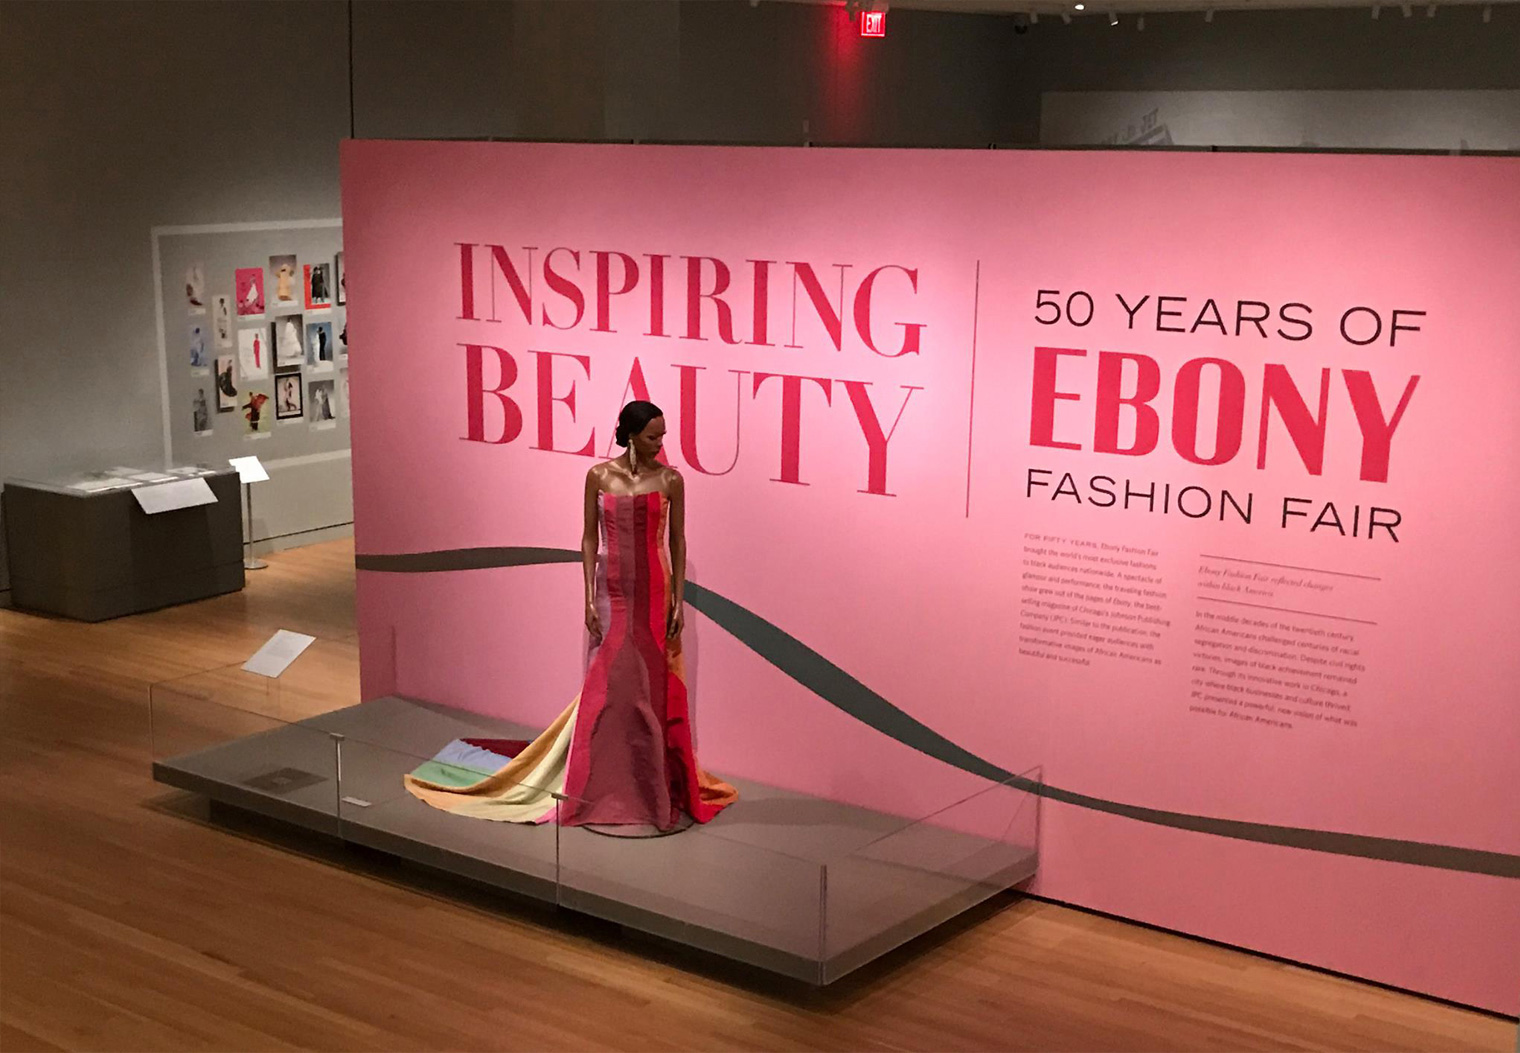 Inspiring Beauty 50 Years of Ebony Fashion Fair